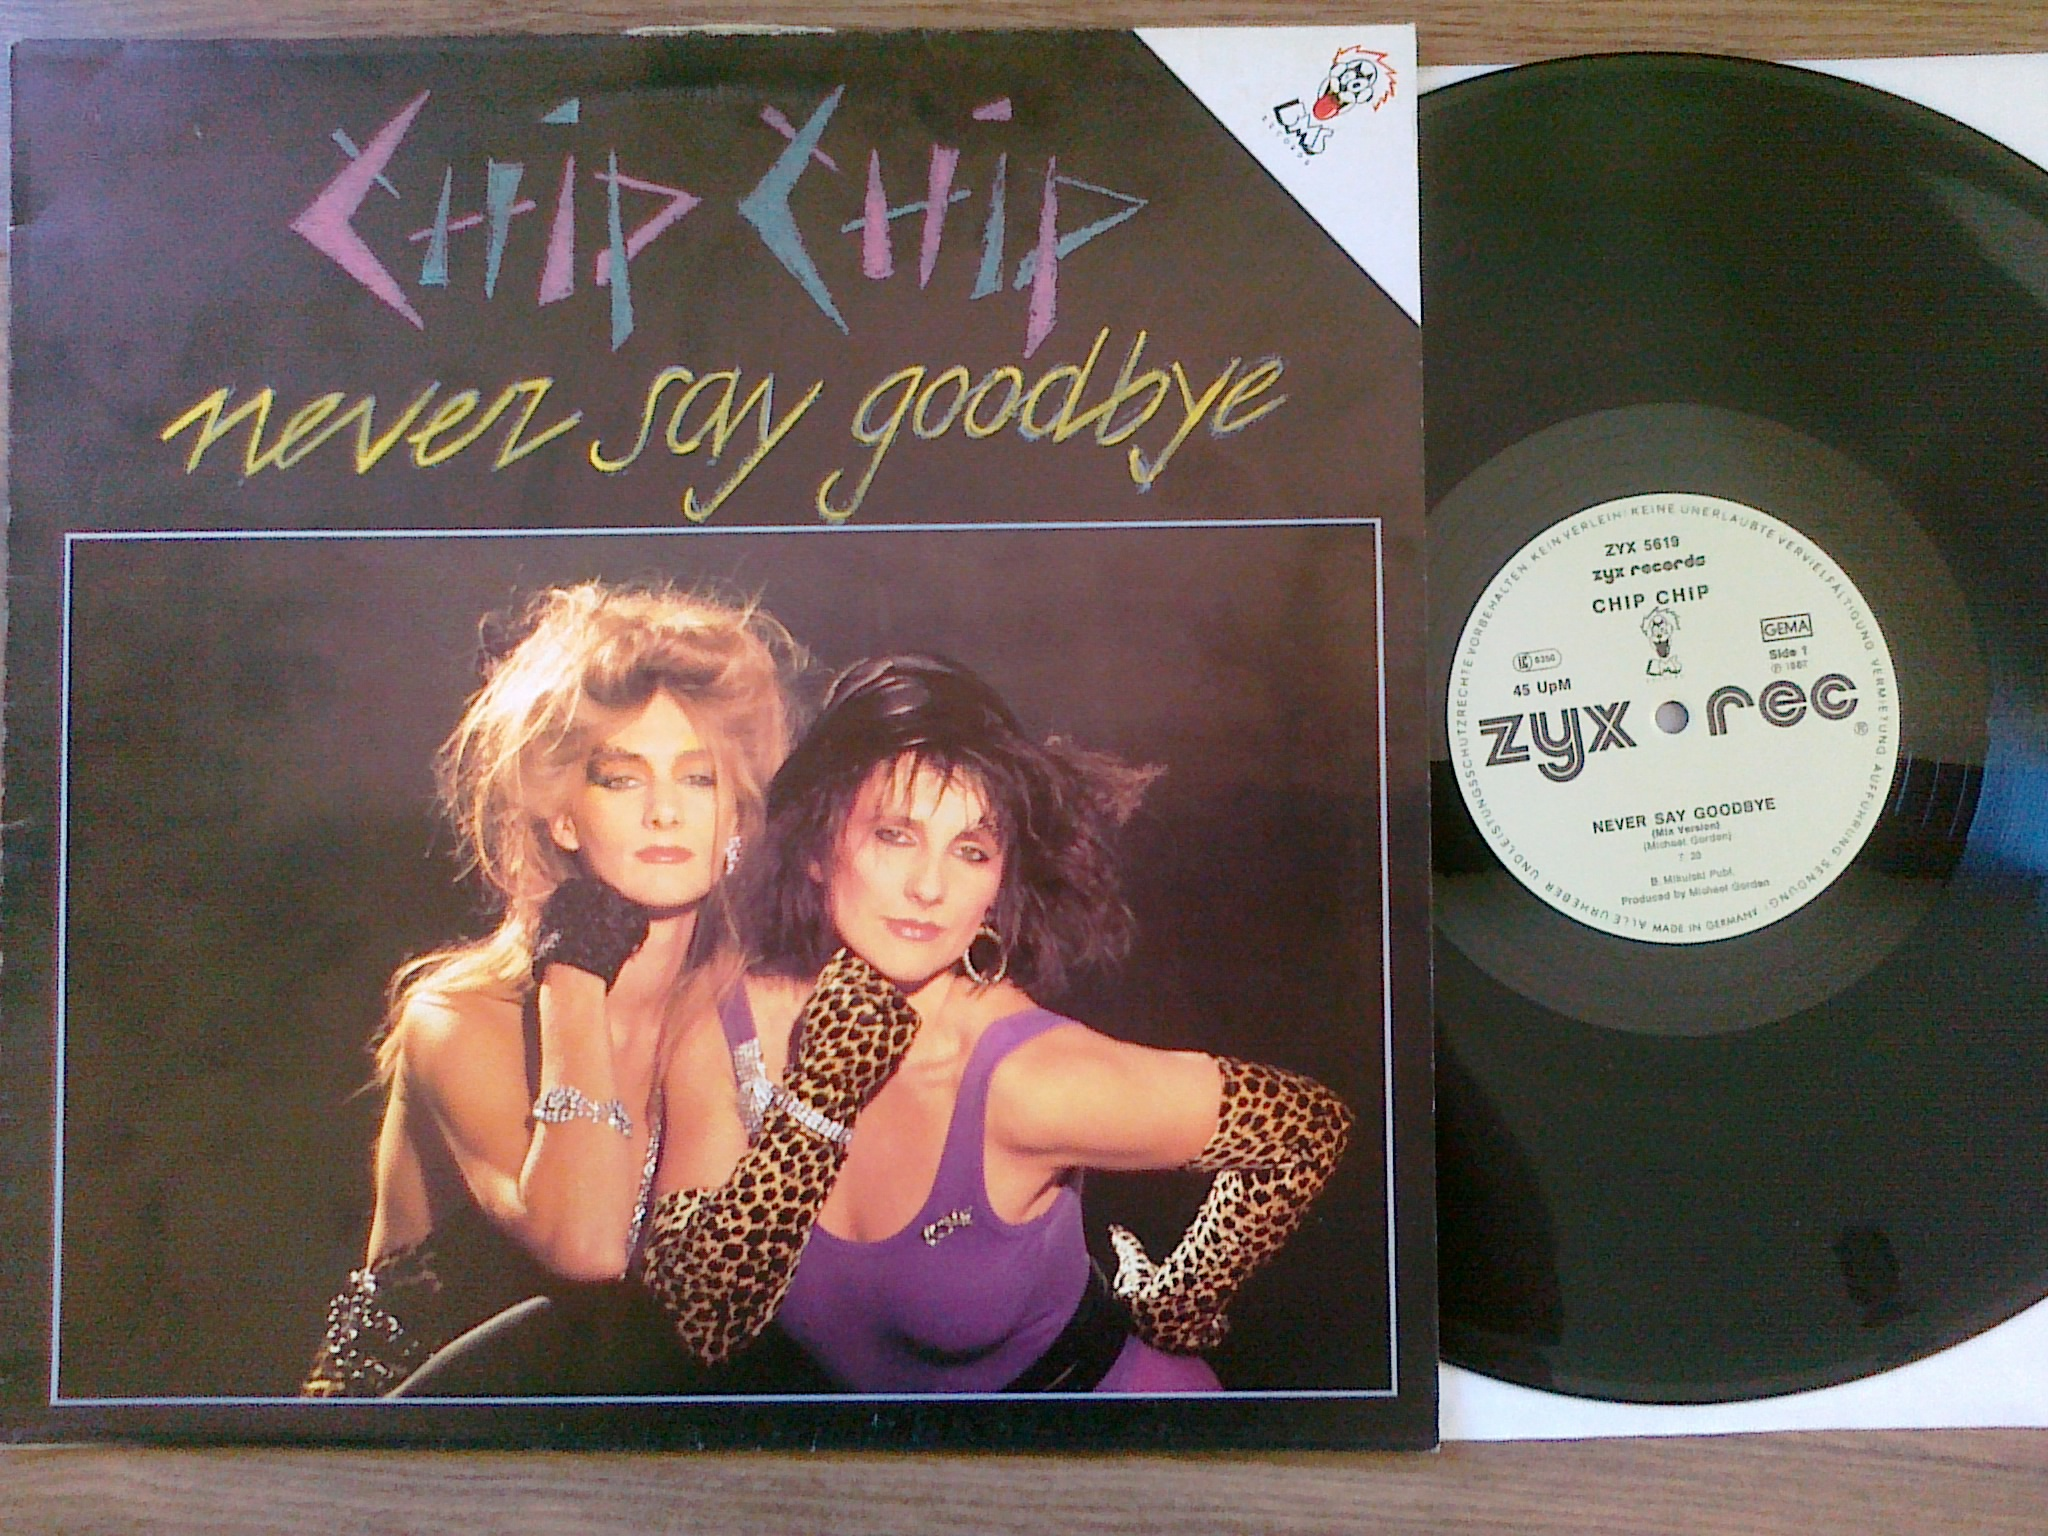 Chip Chip - Never Say Goodbye